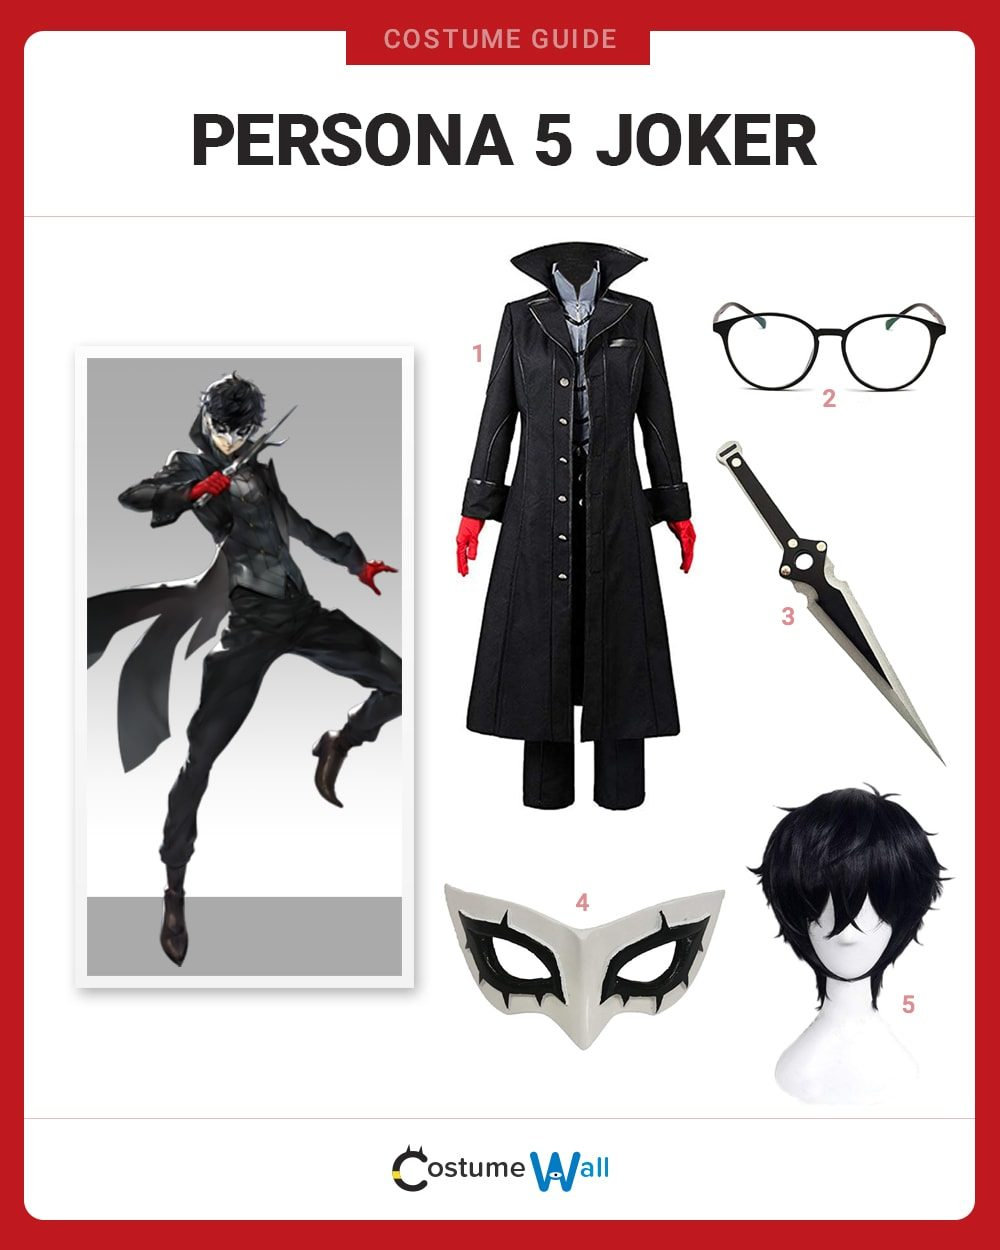 Persona 5 Joker Costume Guide